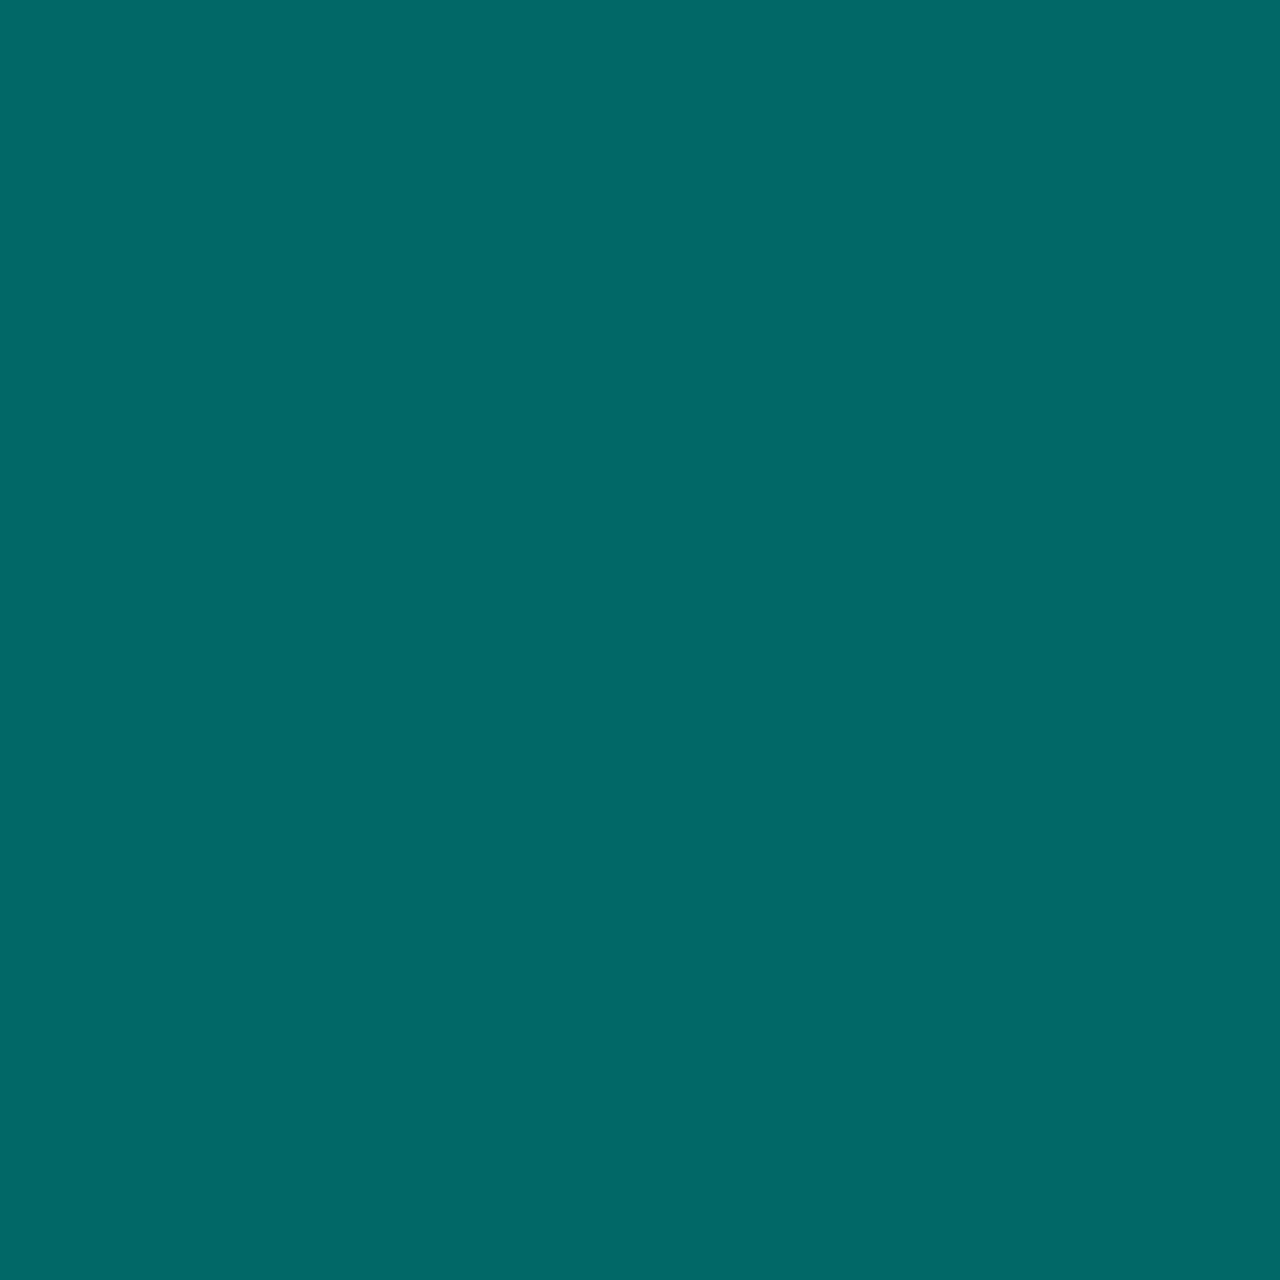 #0395 Rosco Gels Roscolux Teal Green, 20x24""